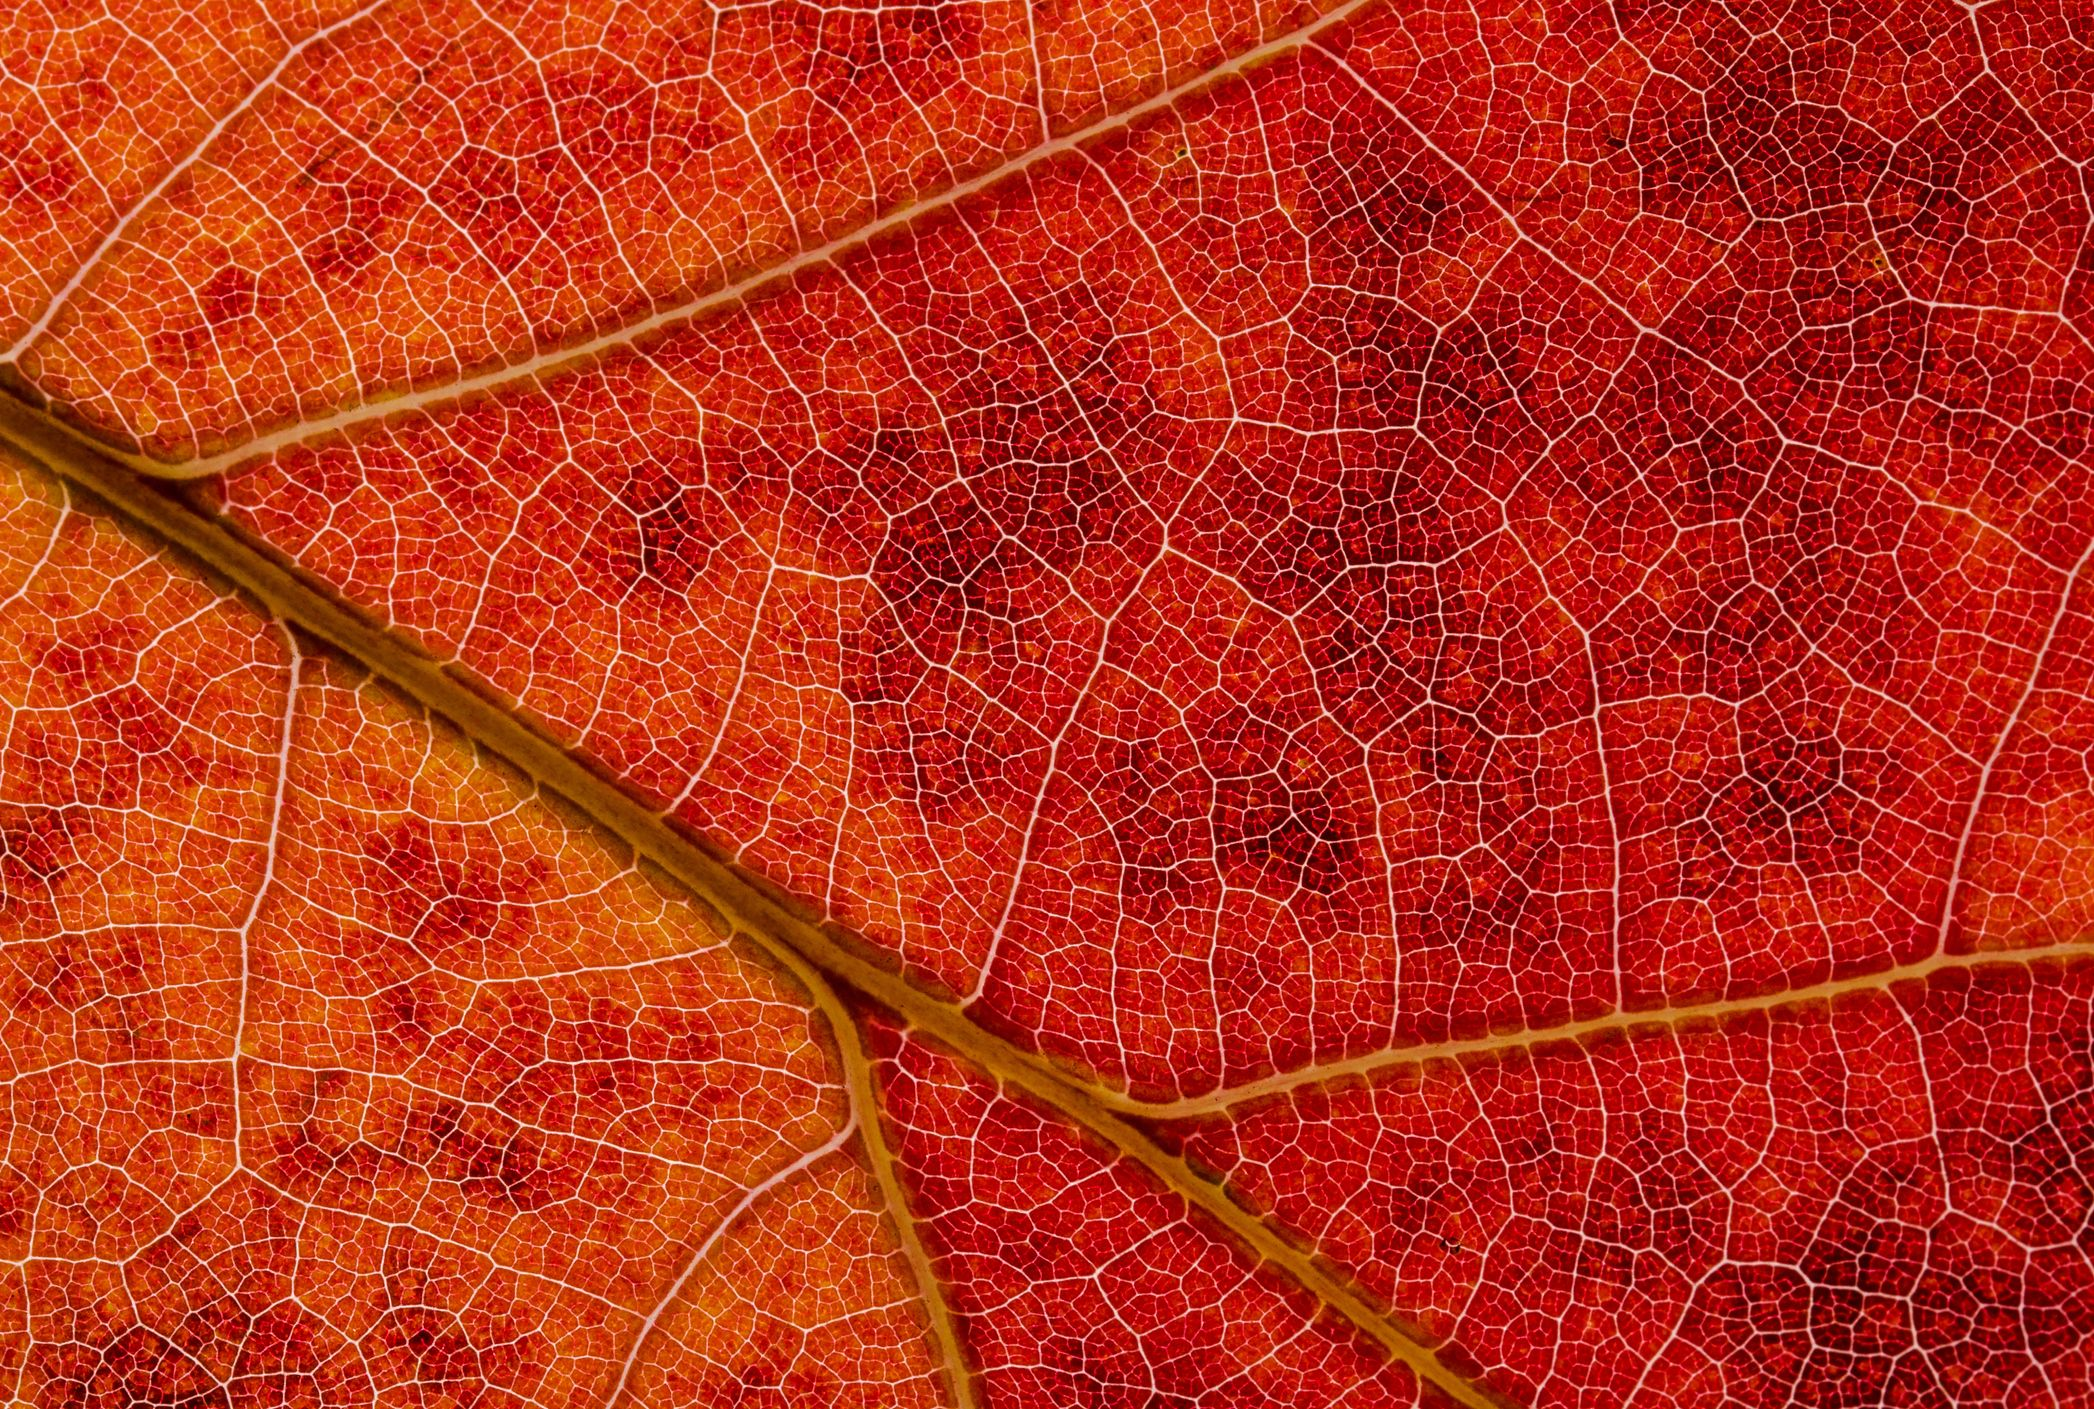 Amazing Time Lapse Shows Leaves Dramatically Changing Color During Fall Mental Floss